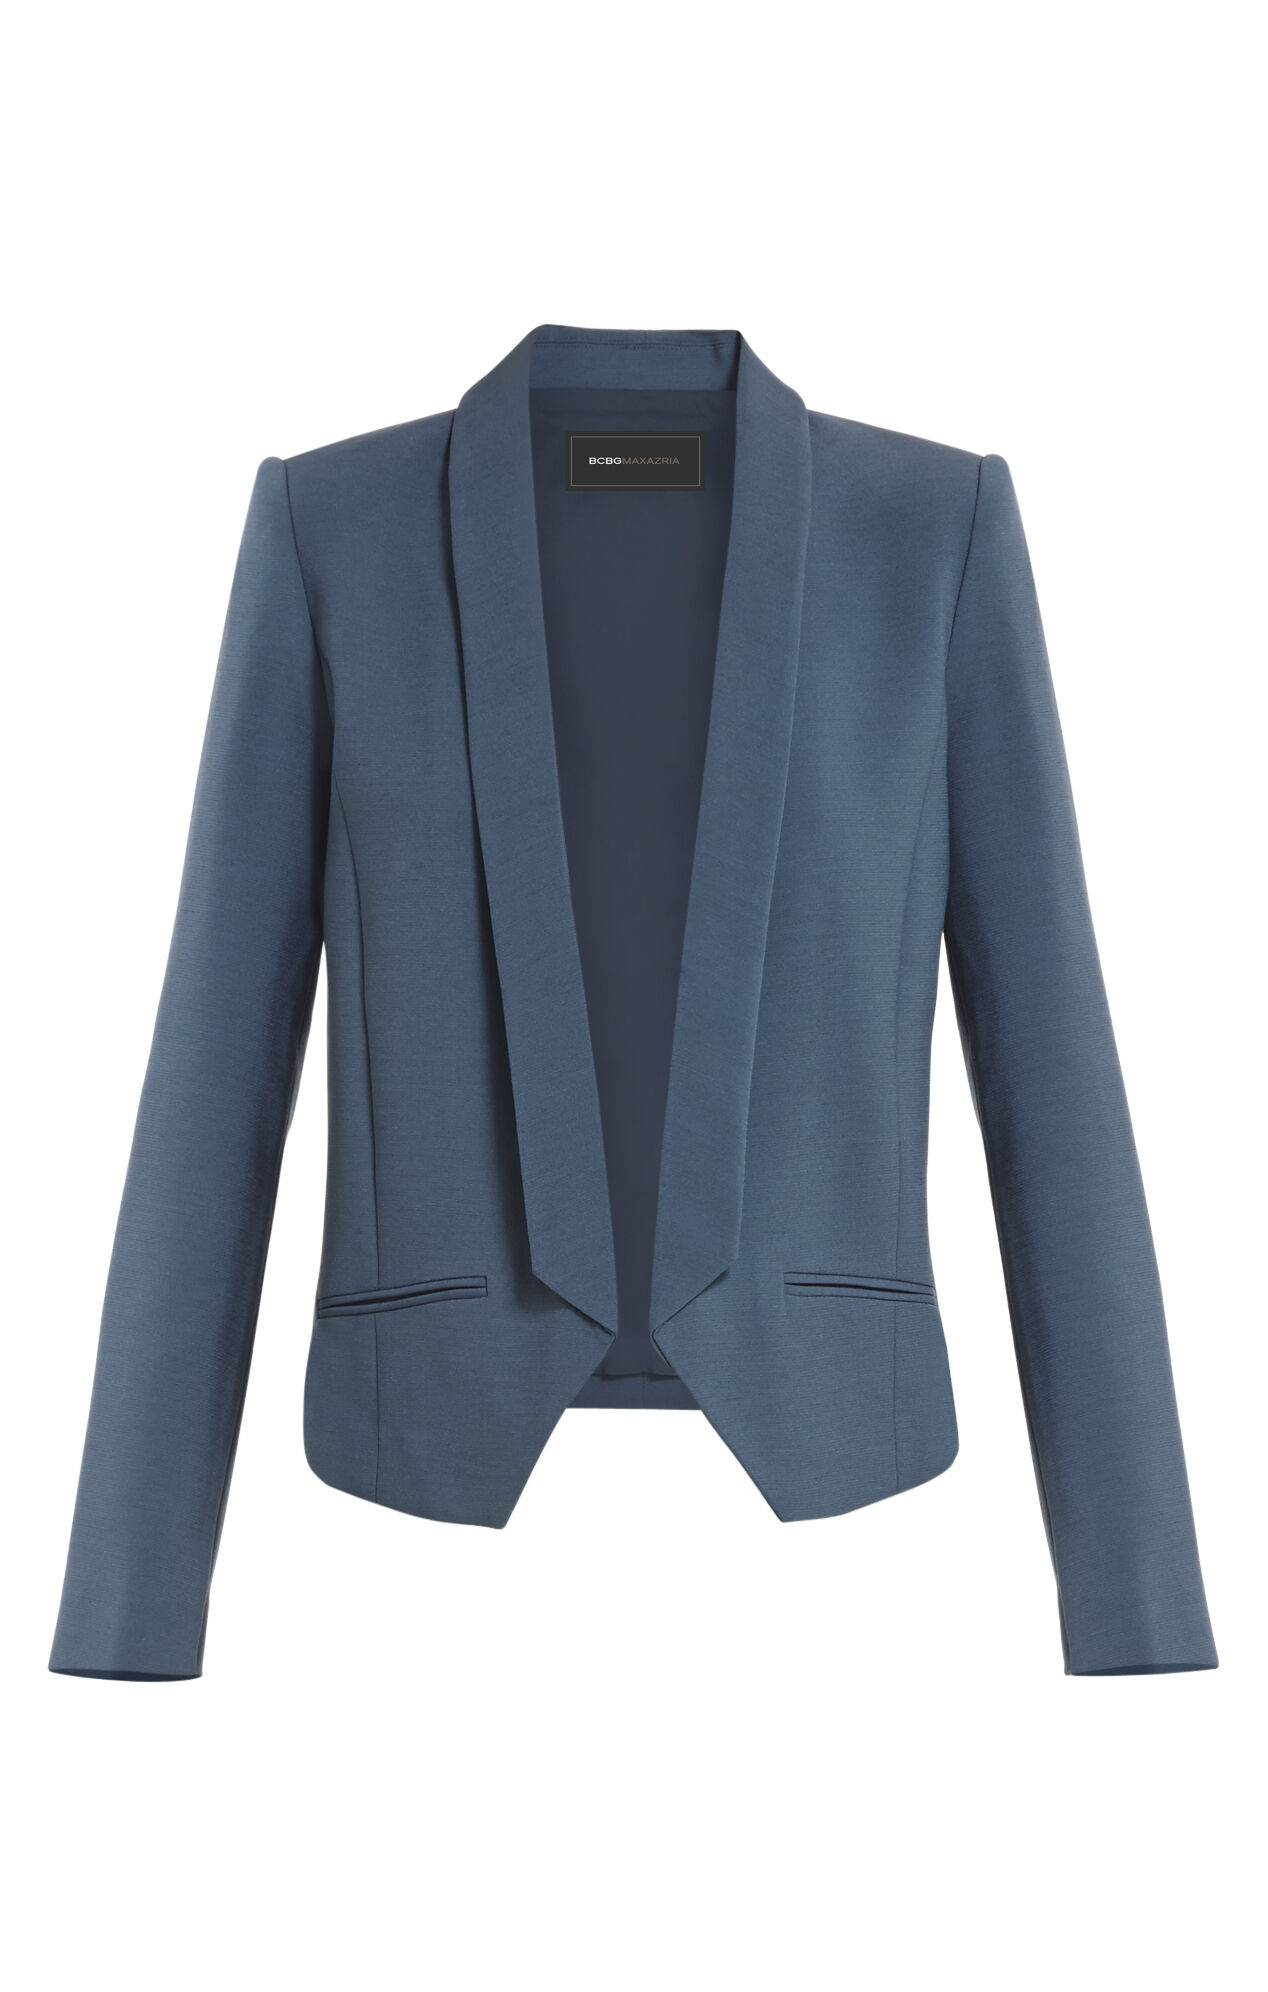 Fredrick Relaxed-Fit Blazer